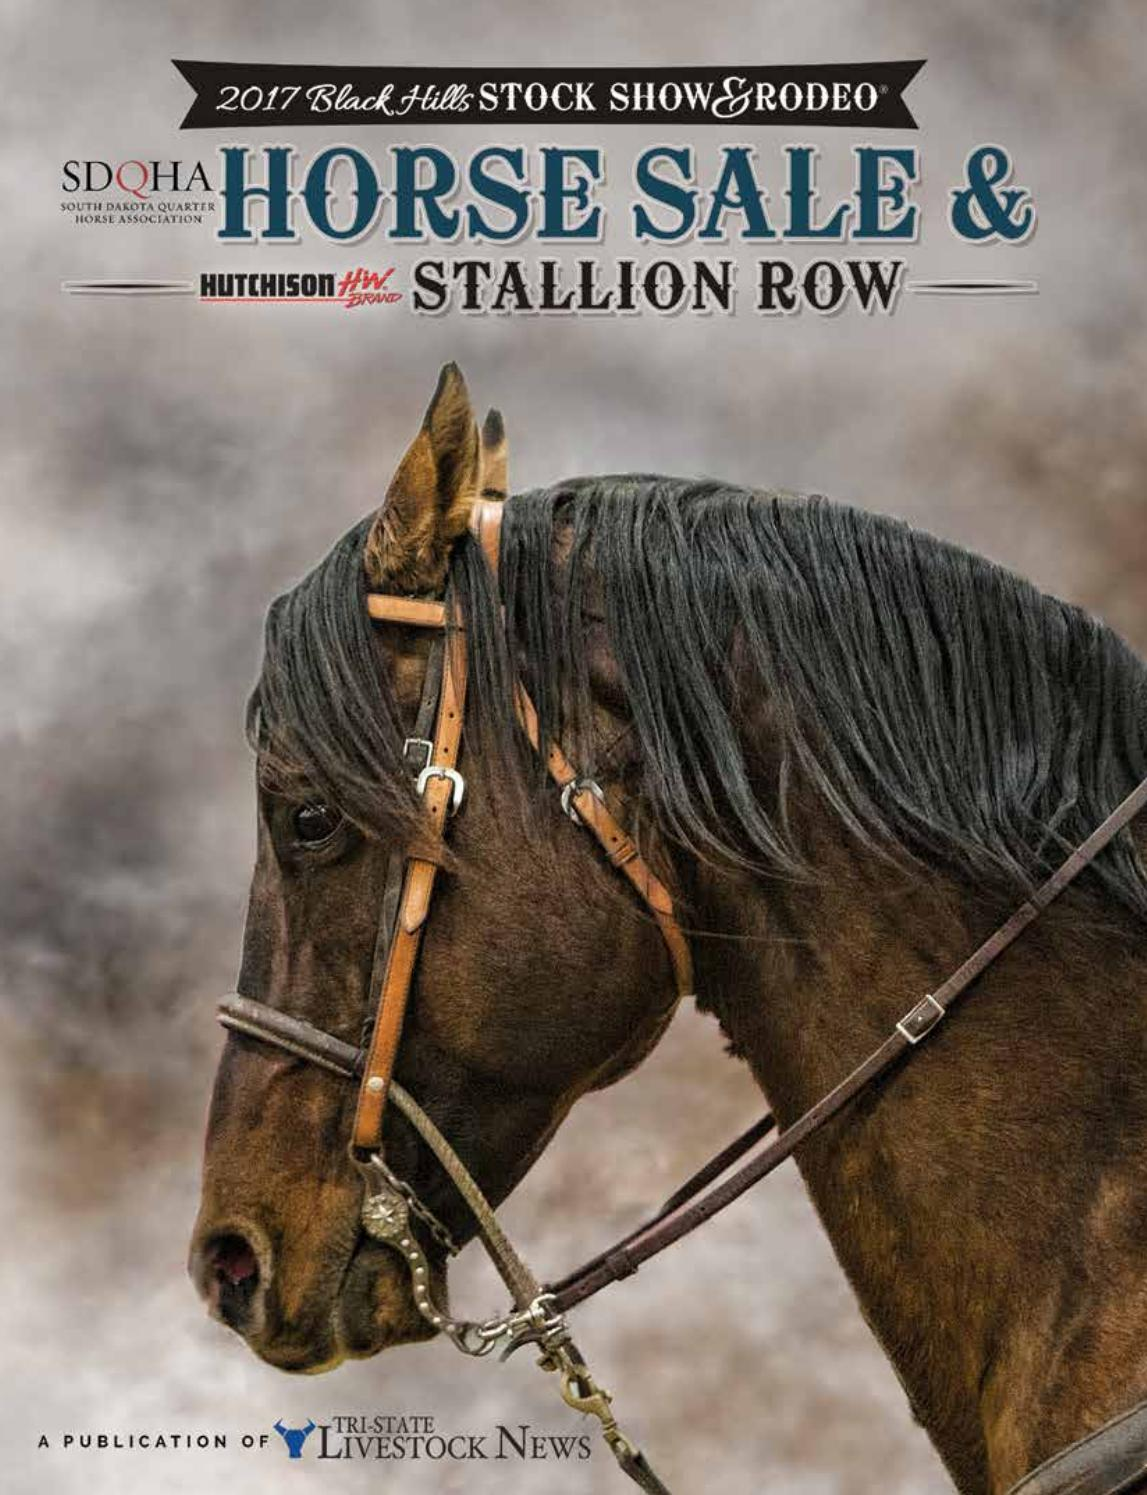 2017 Black Hills Stock Show & Rodeo | Horse Sale & Stallion Row by  Tri-State Livestock News - Farmer & Rancher Exchange - issuu